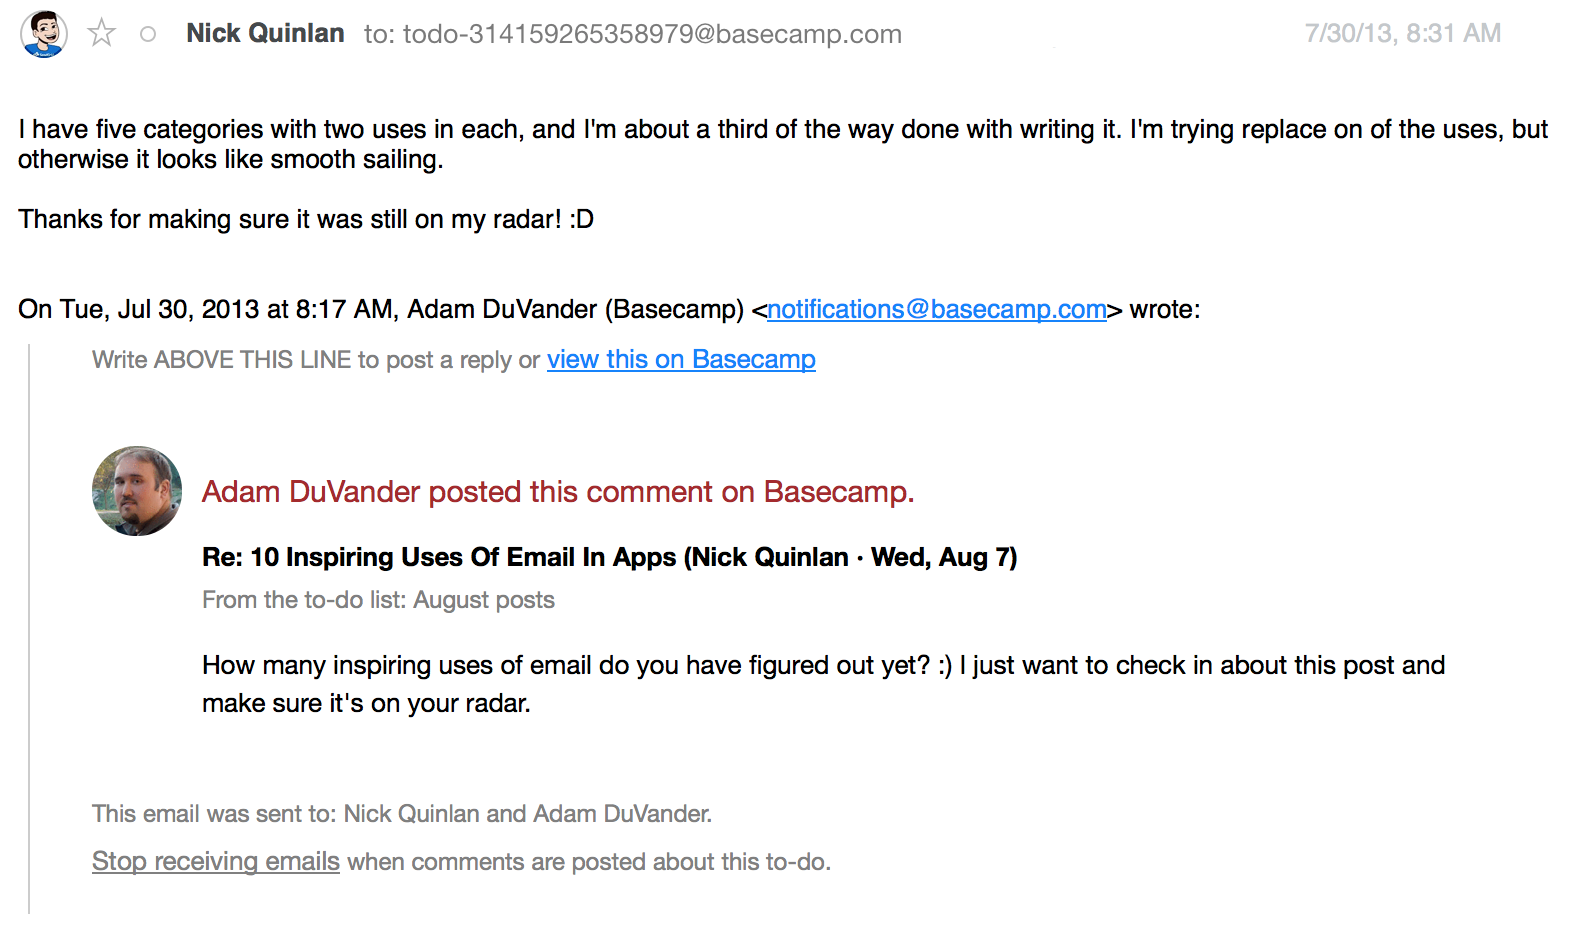 Replying to a discussion about this post on Basecamp. My email was automatically imported into the app.